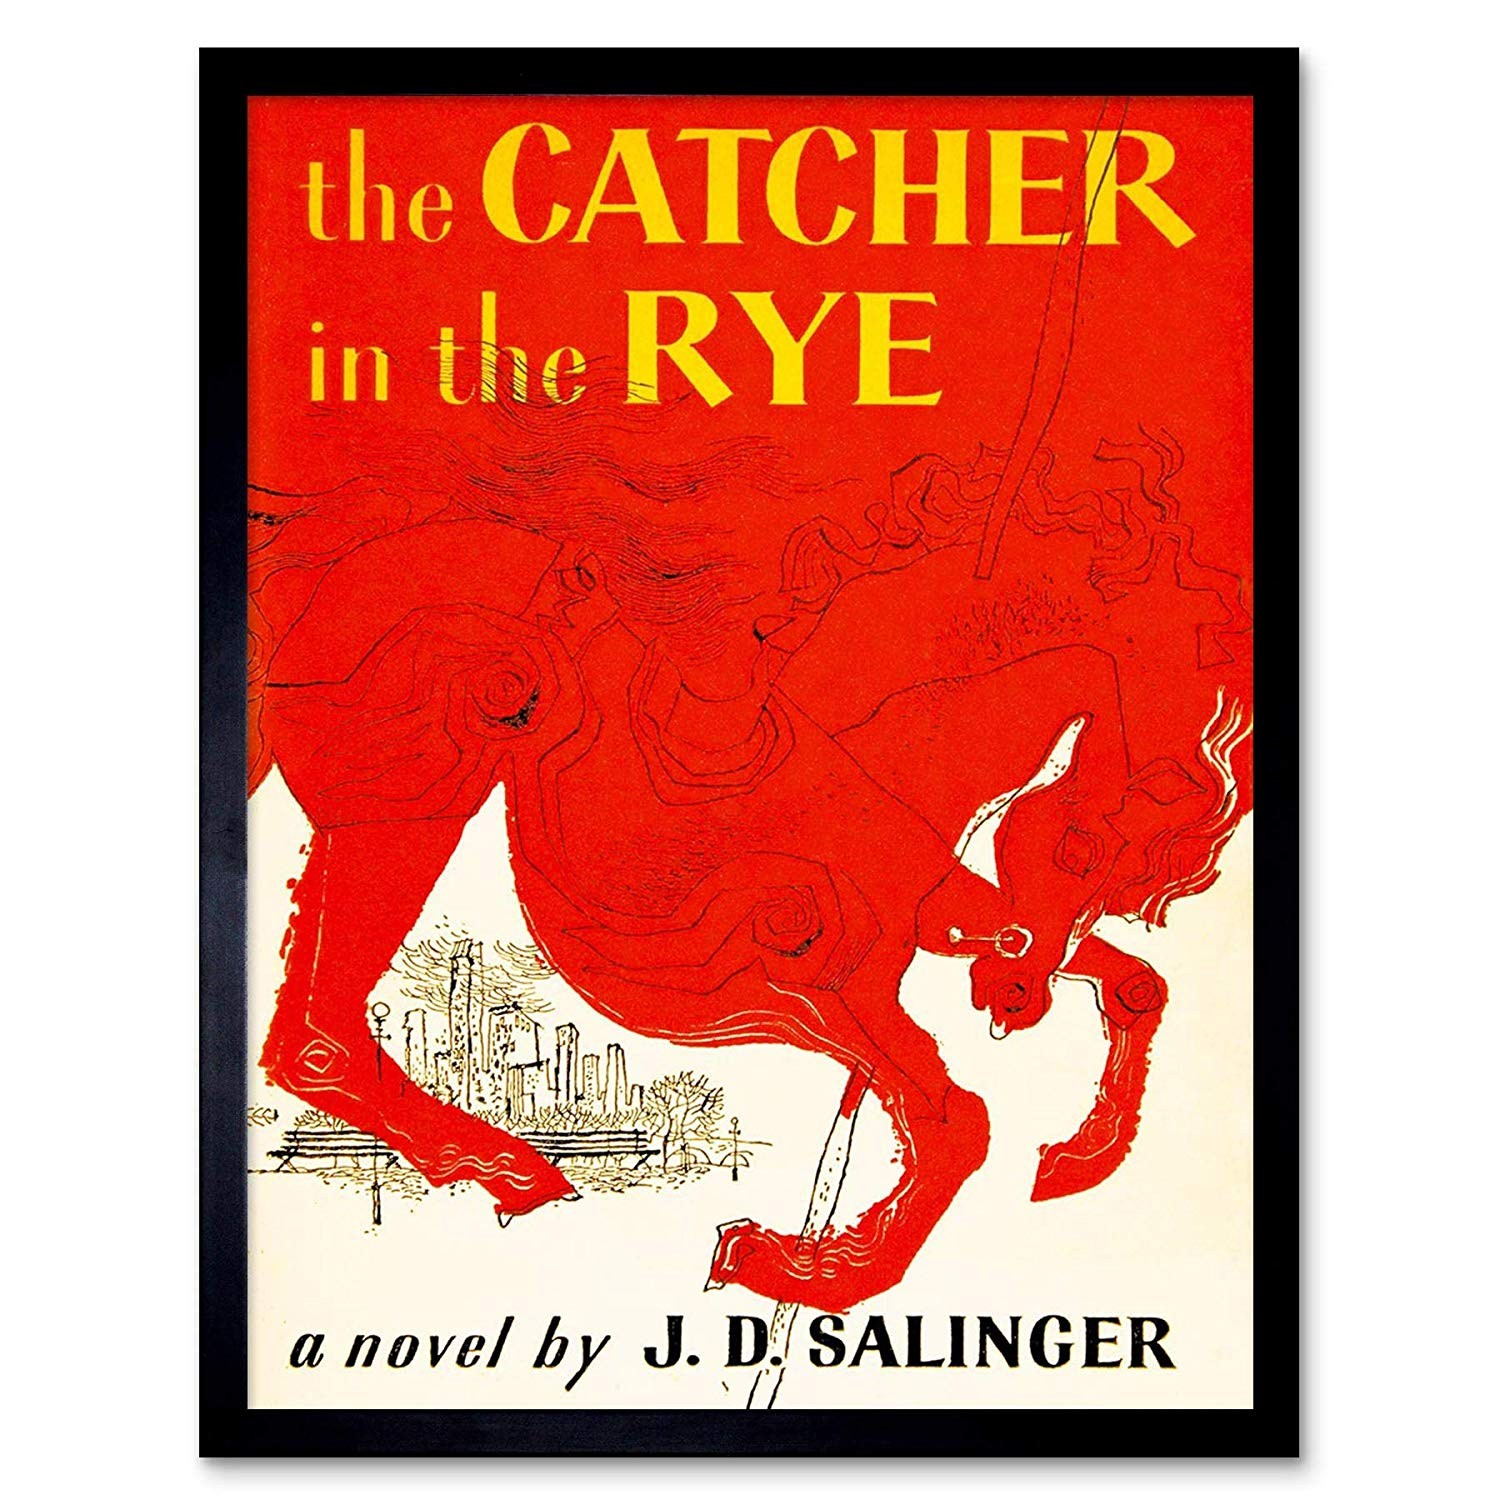 Book Cover of The Catcher in the Rye